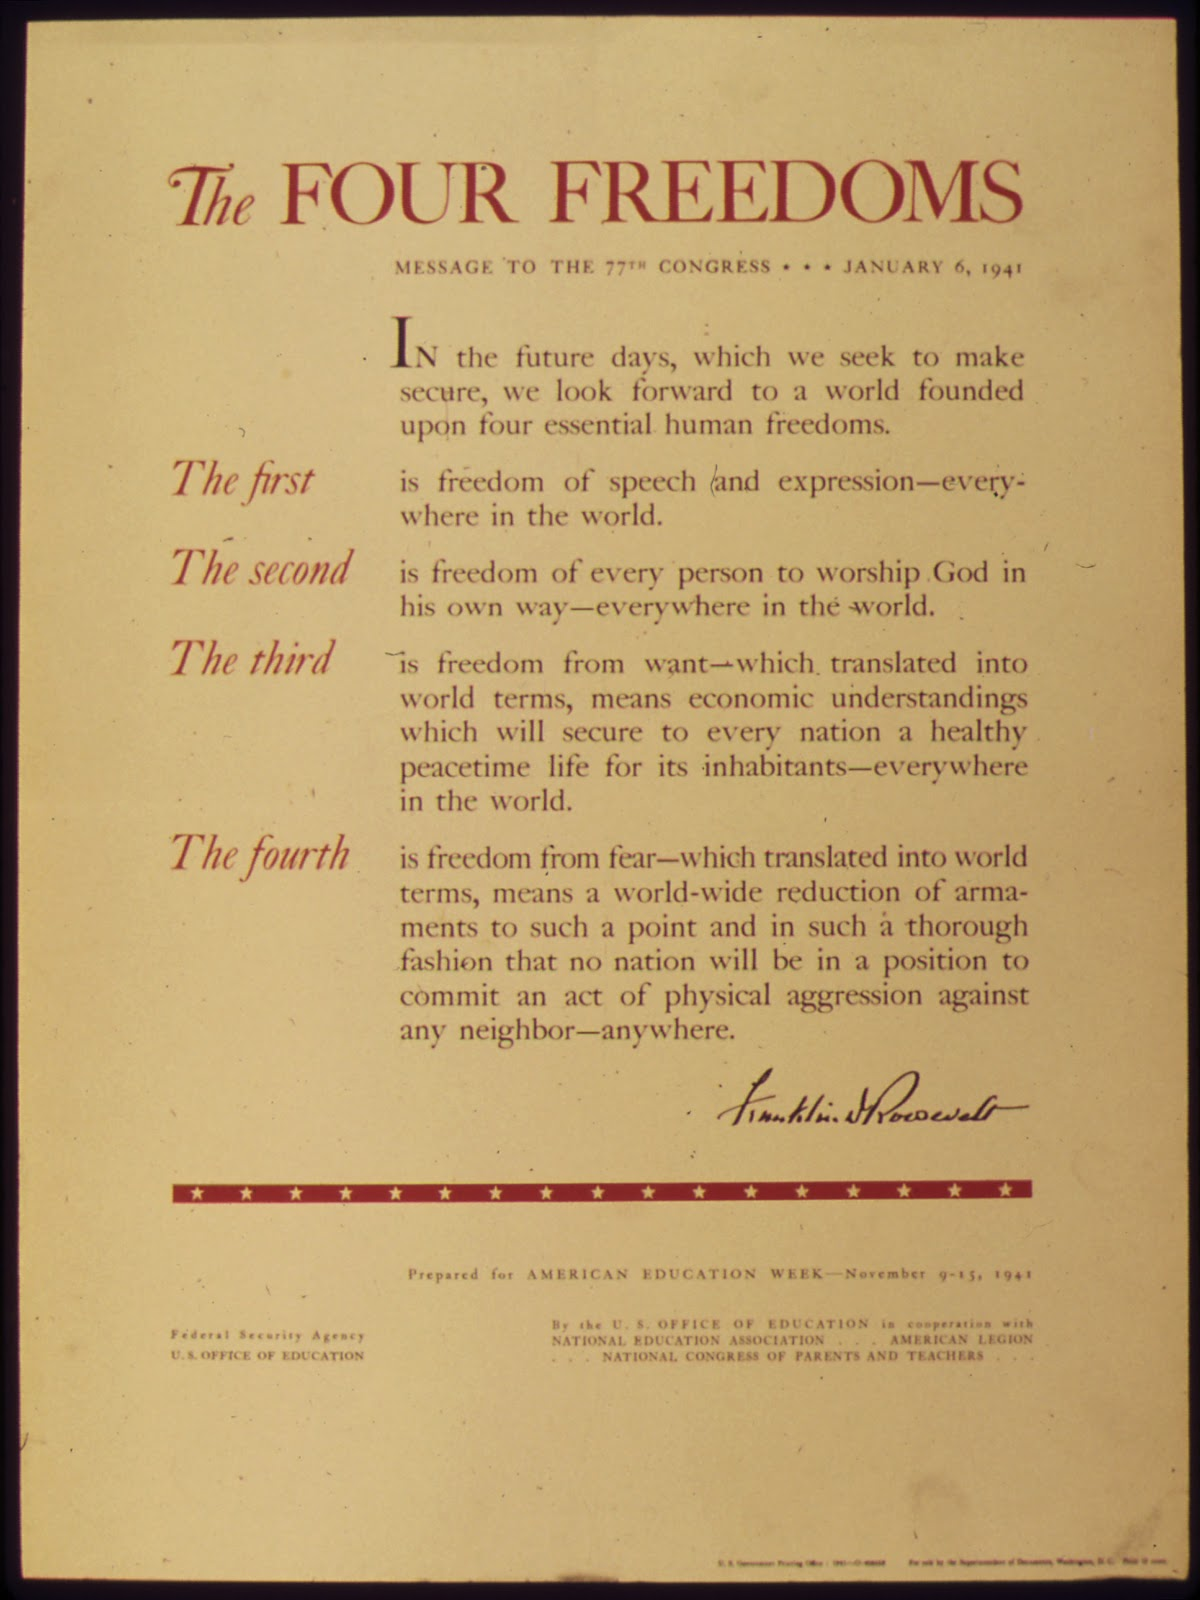 The Four Freedoms Speech delivered to the 77th Congress during President Franklin Delano Roosevelt's State of the Union Address on January 6, 1941.